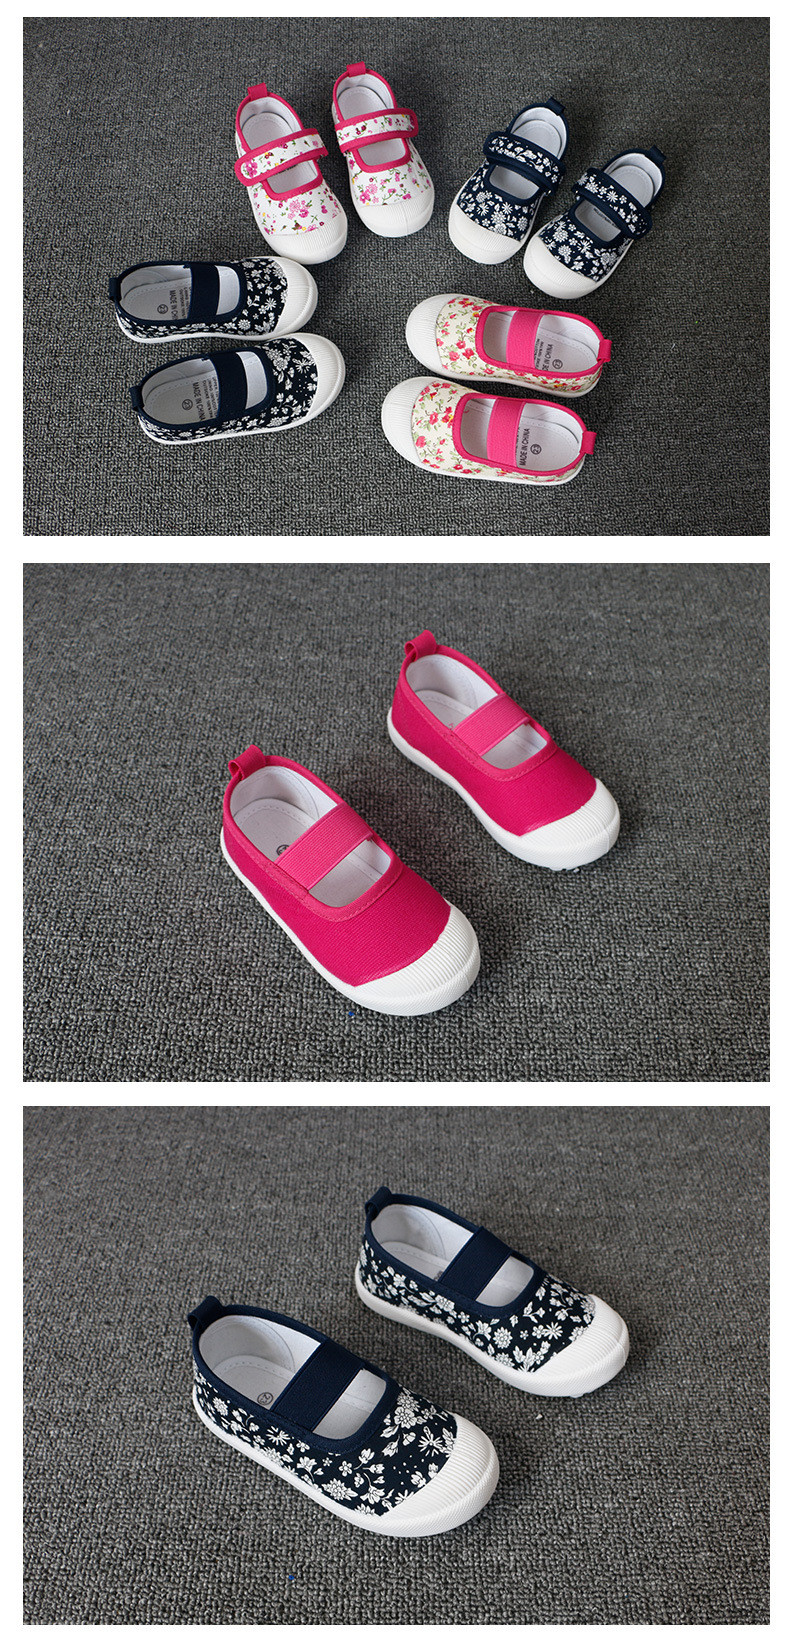 17 children's spring kids baby girls Candy colors floral princess shoes canvas sneakers Toddler infantil shoes for girls 3